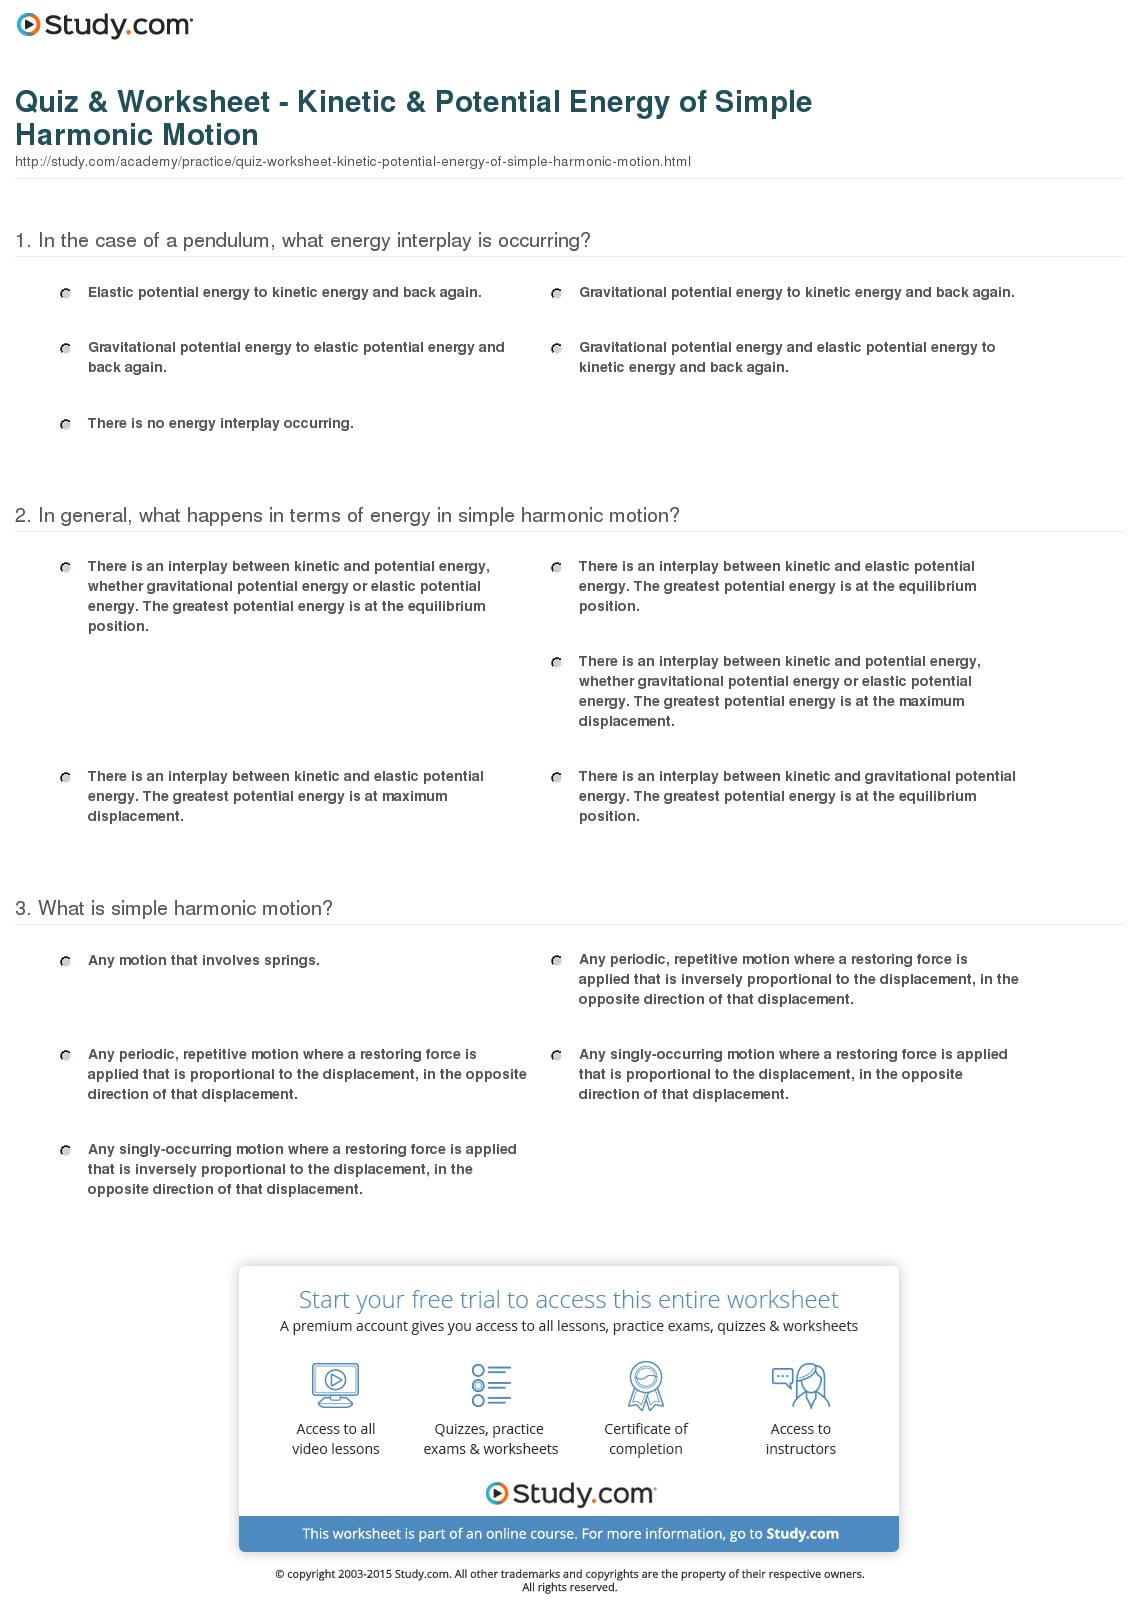 Quiz Worksheet Kinetic Potential Energy Of Simple